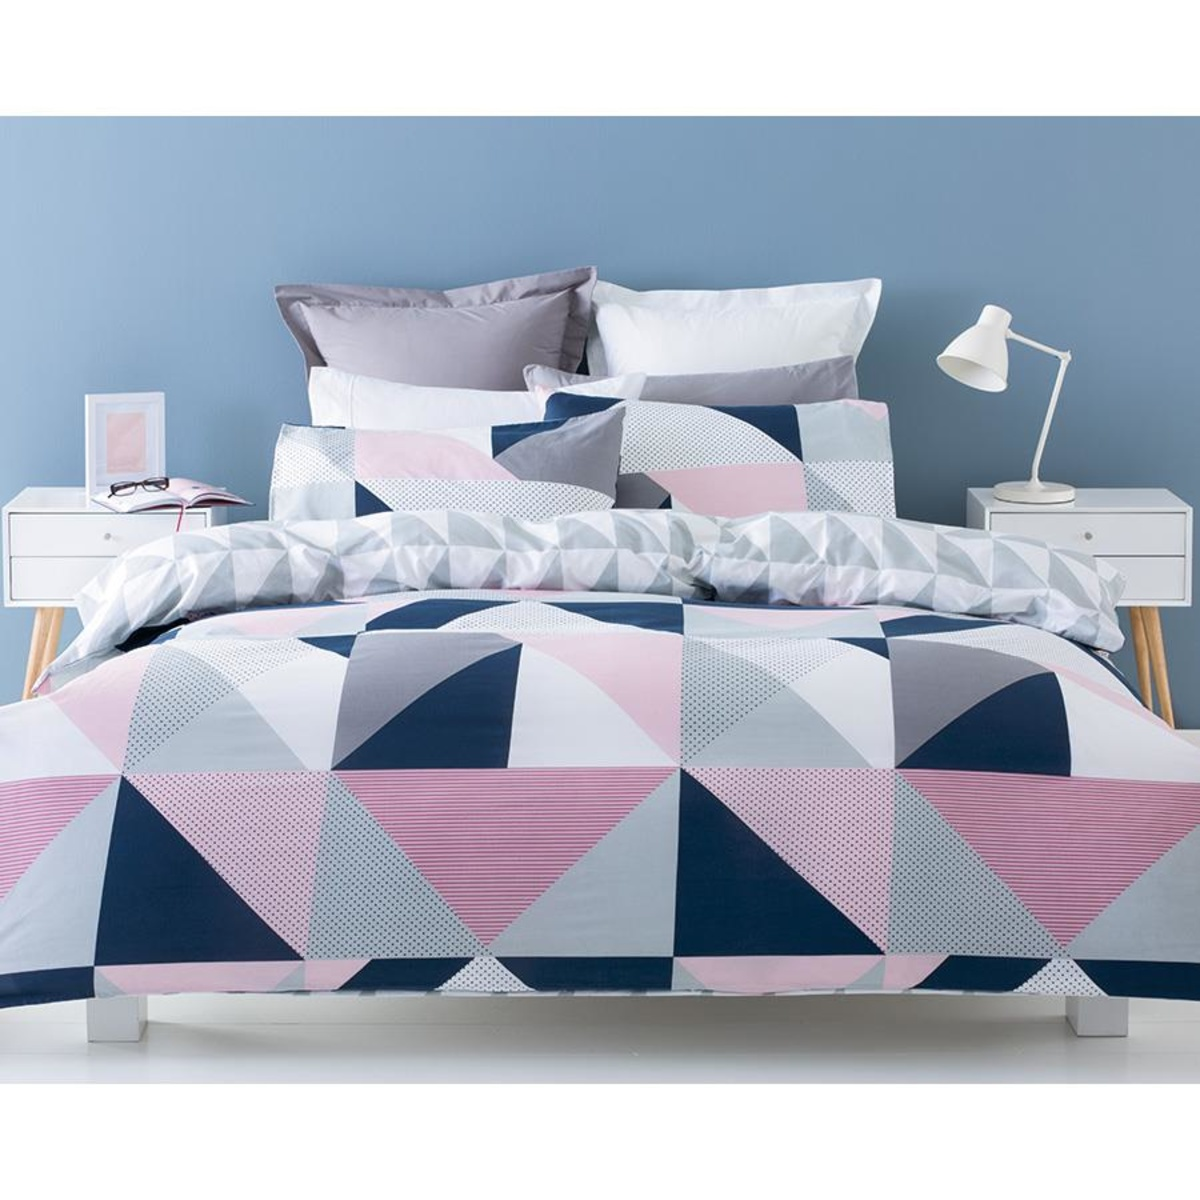 Double Doona Covers Jasper Quilt Cover Set Queen Bed Kmart